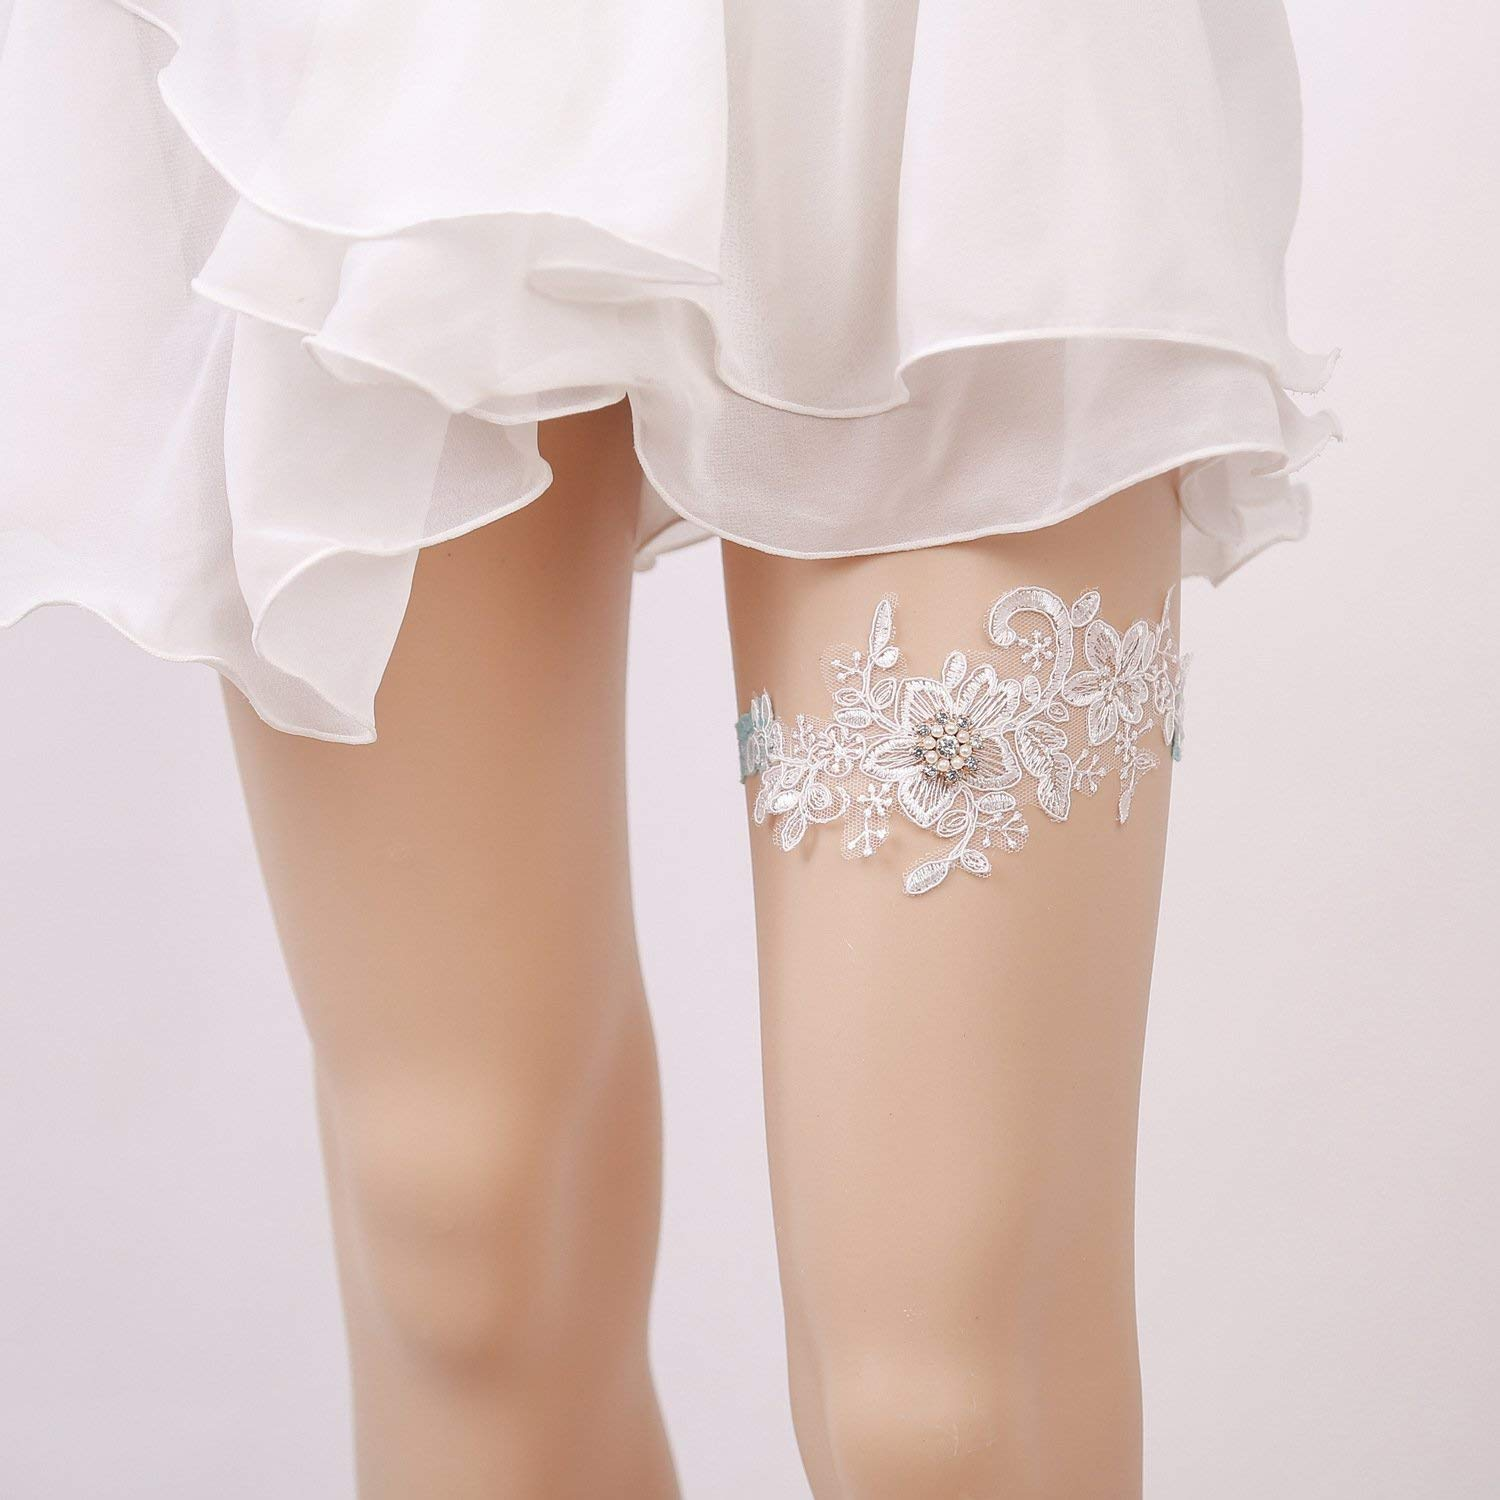 Why Two Garters For Wedding: Bridal Garter, Wedding Garter Elastic Rhinestone